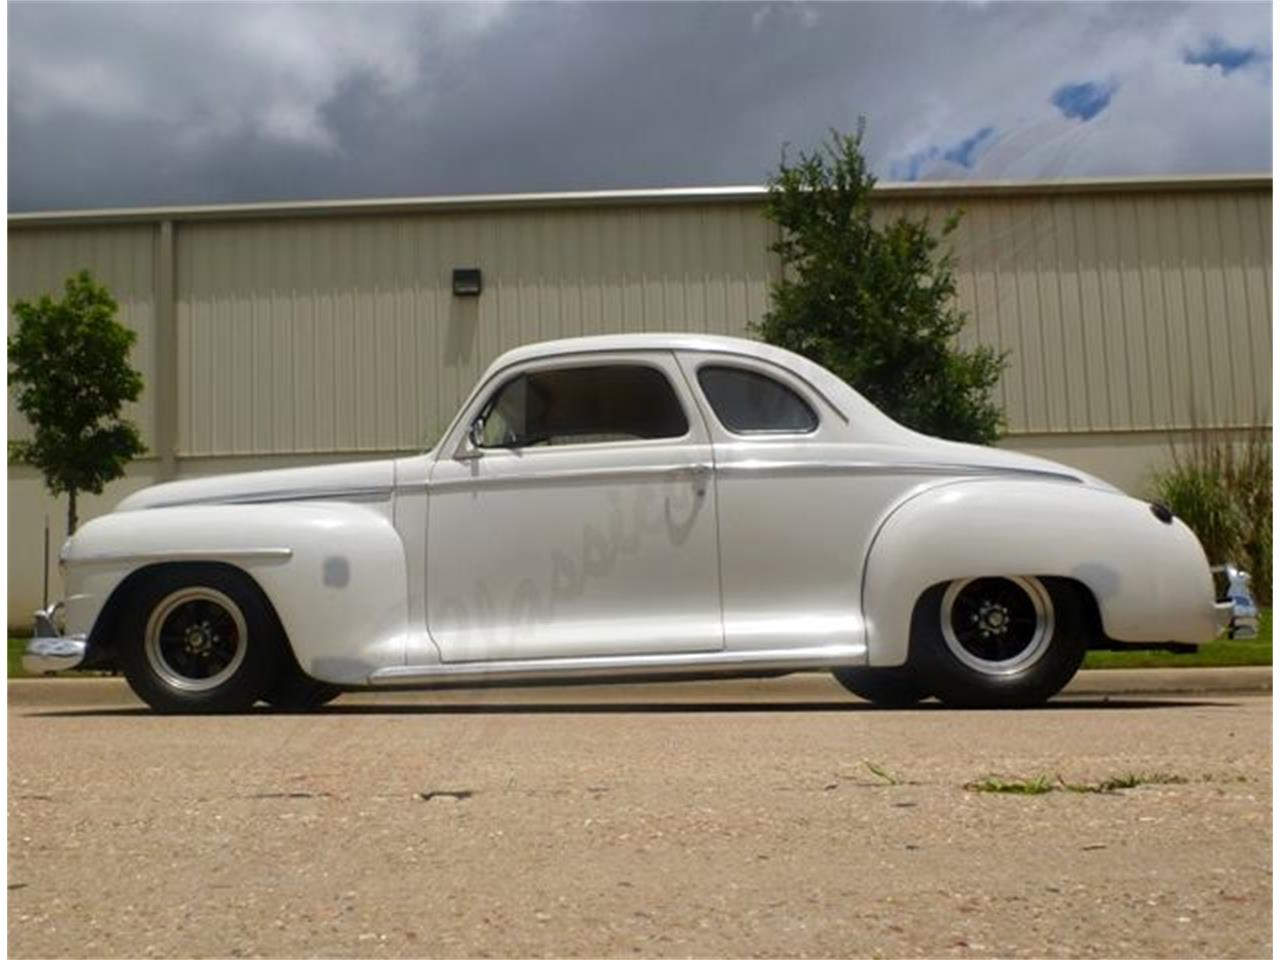 Enterprise Cars For Sale >> 1948 Plymouth SPECIAL DELUXE BUSINESS COUPE for Sale | ClassicCars.com | CC-867825